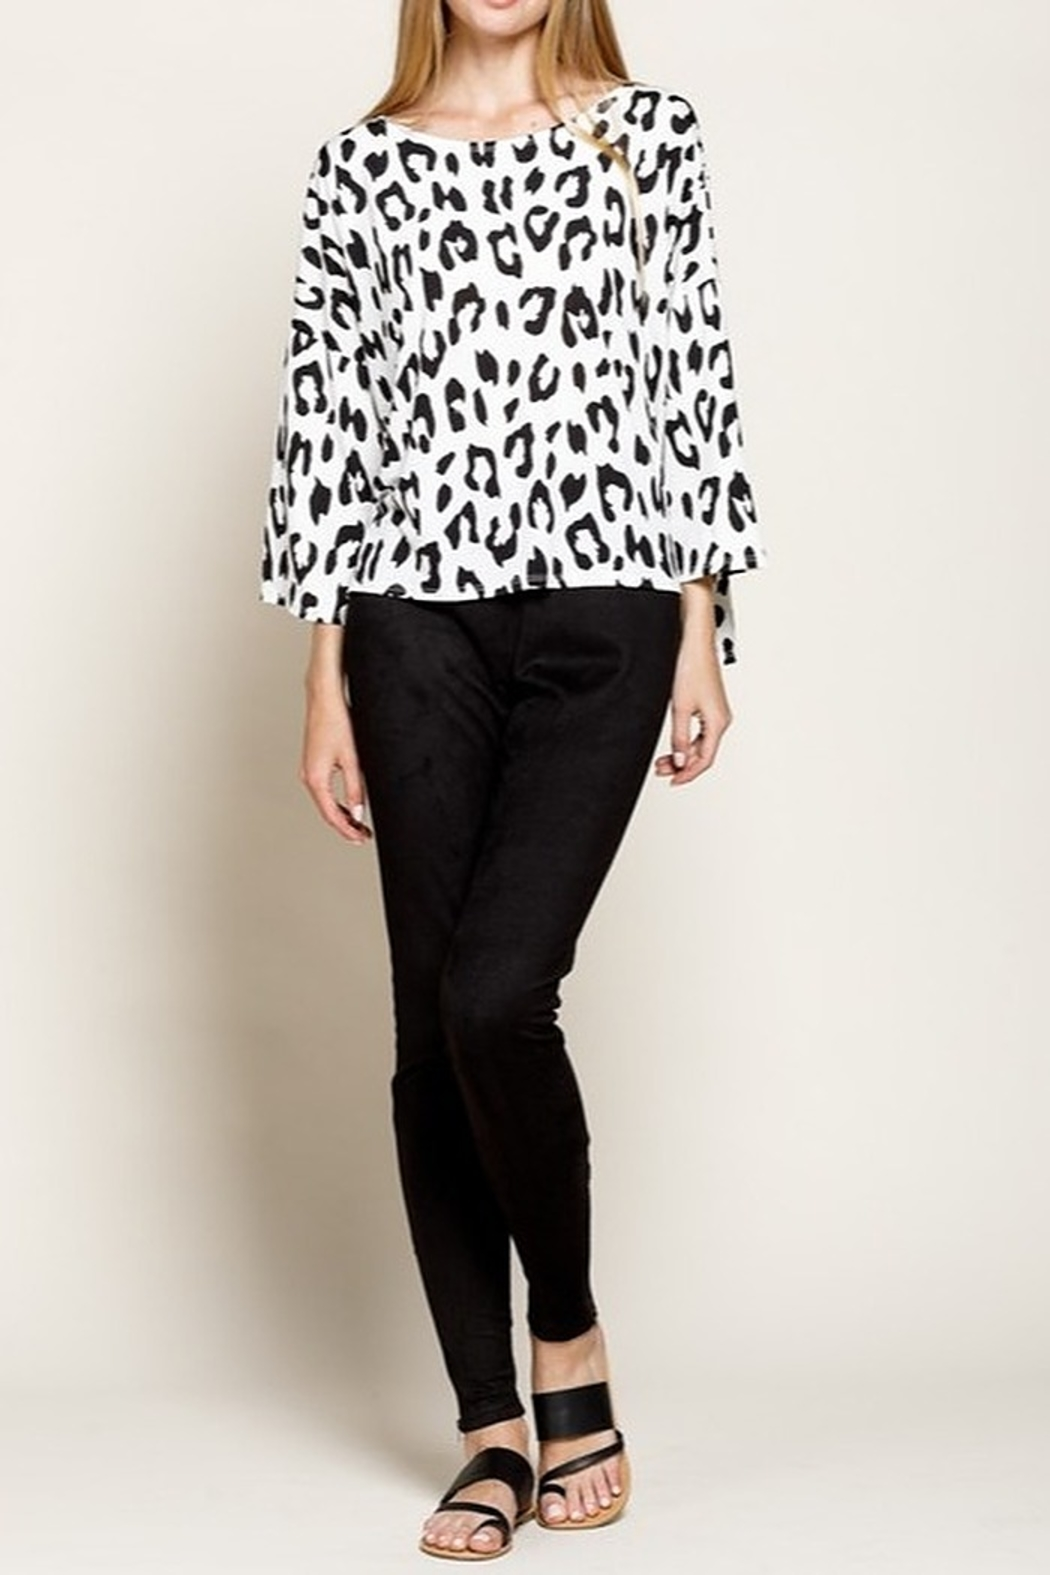 Mittoshop LEOPARD BOAT NECK 3/4 SLEEVES KNIT TOP - Back Cropped Image